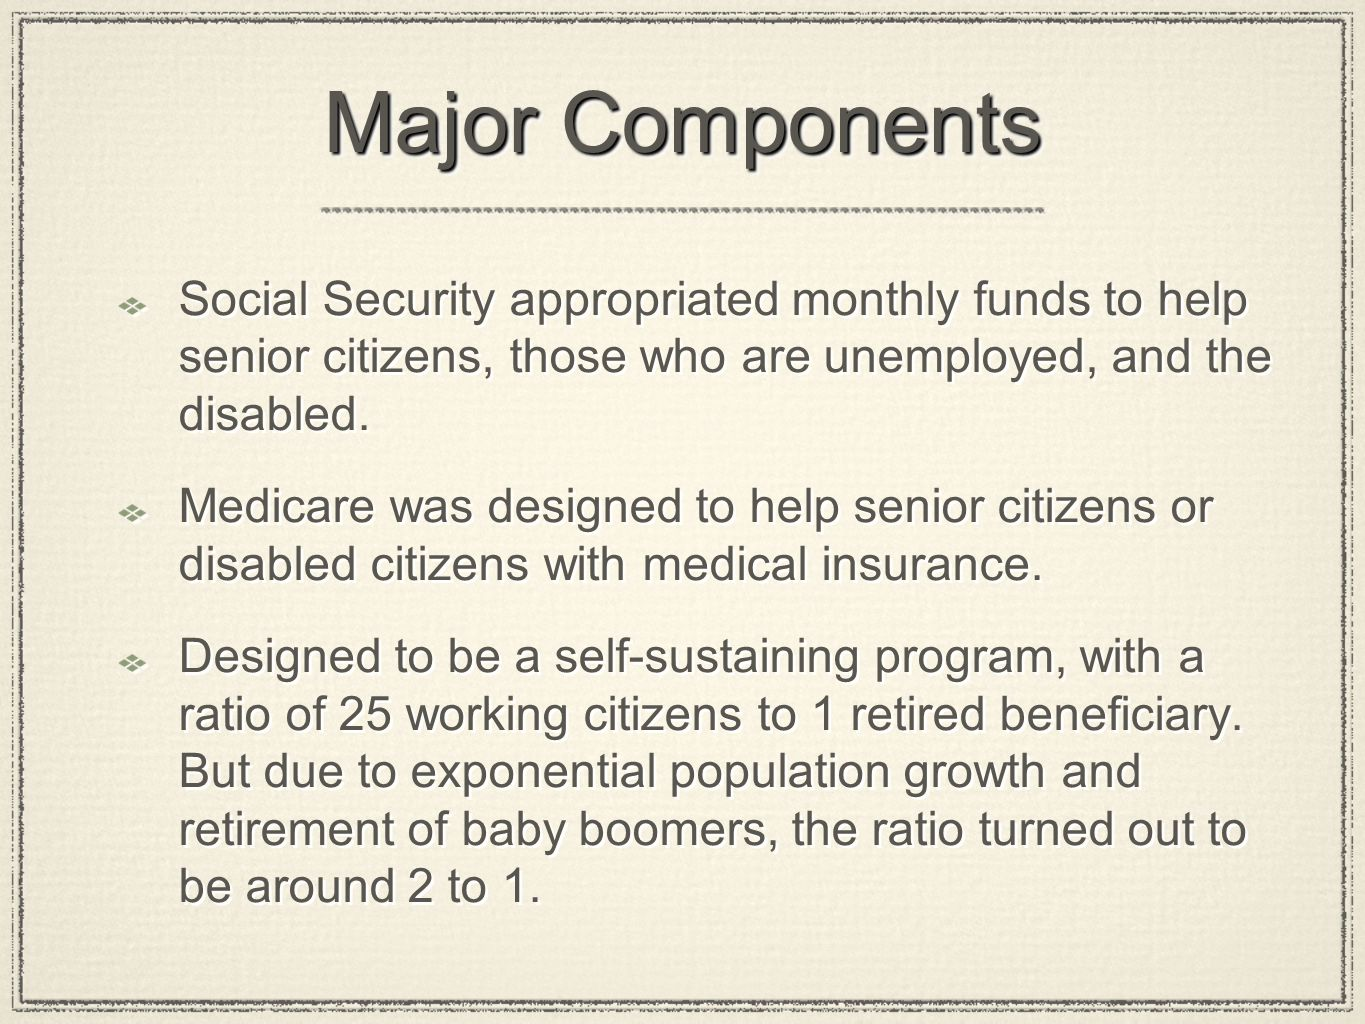 Major Components Social Security appropriated monthly funds to help senior citizens, those who are unemployed, and the disabled.